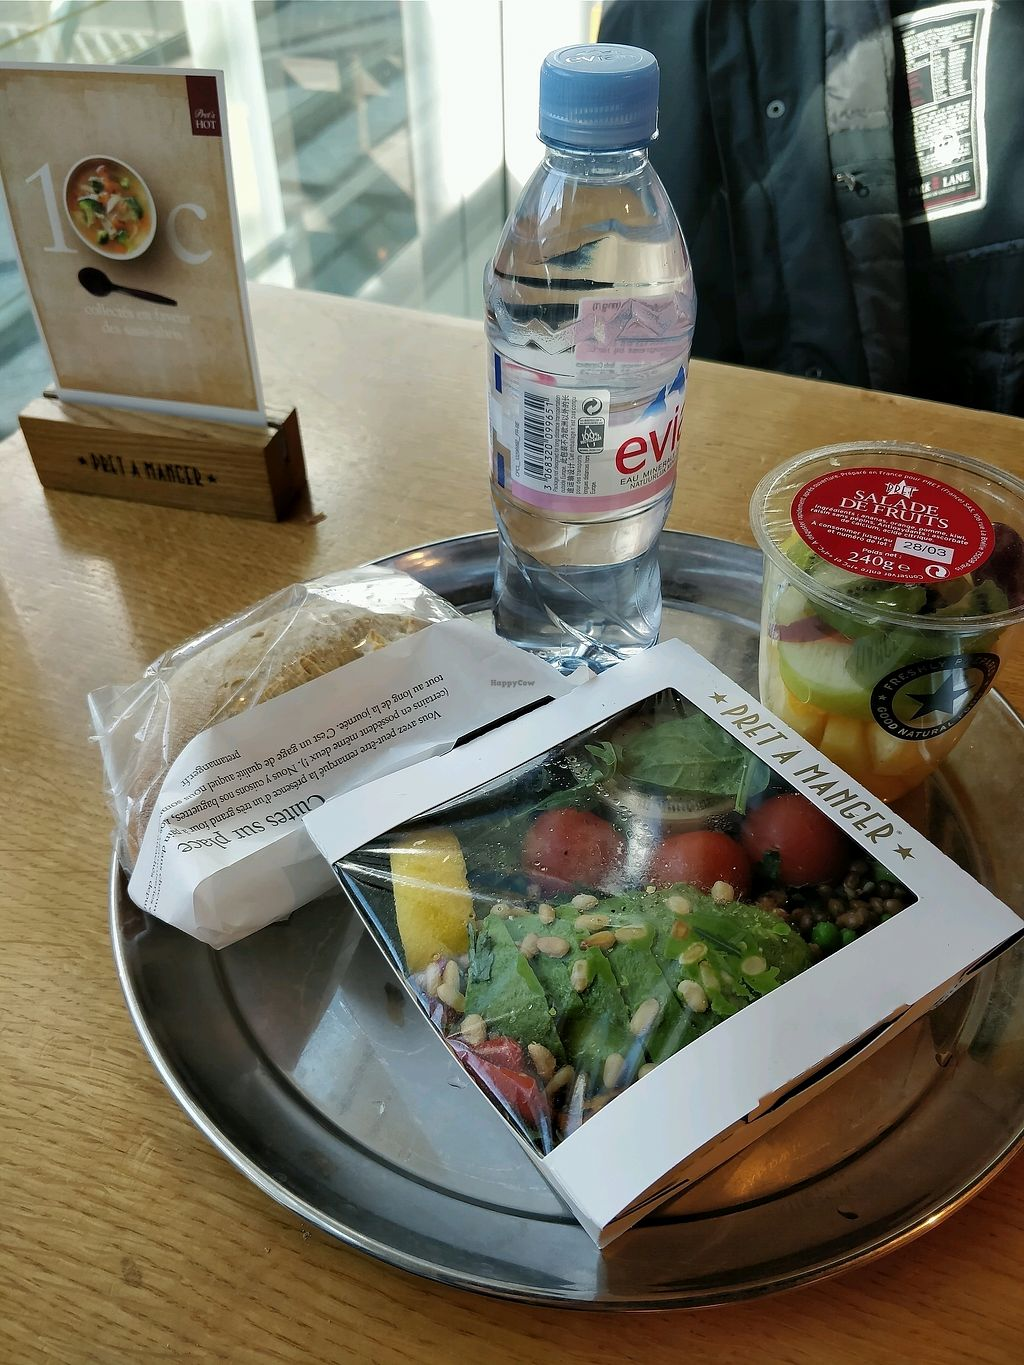 """Photo of Pret a Manger - Airport  by <a href=""""/members/profile/Logge"""">Logge</a> <br/>vegan food at the airport <br/> March 27, 2018  - <a href='/contact/abuse/image/103014/376711'>Report</a>"""